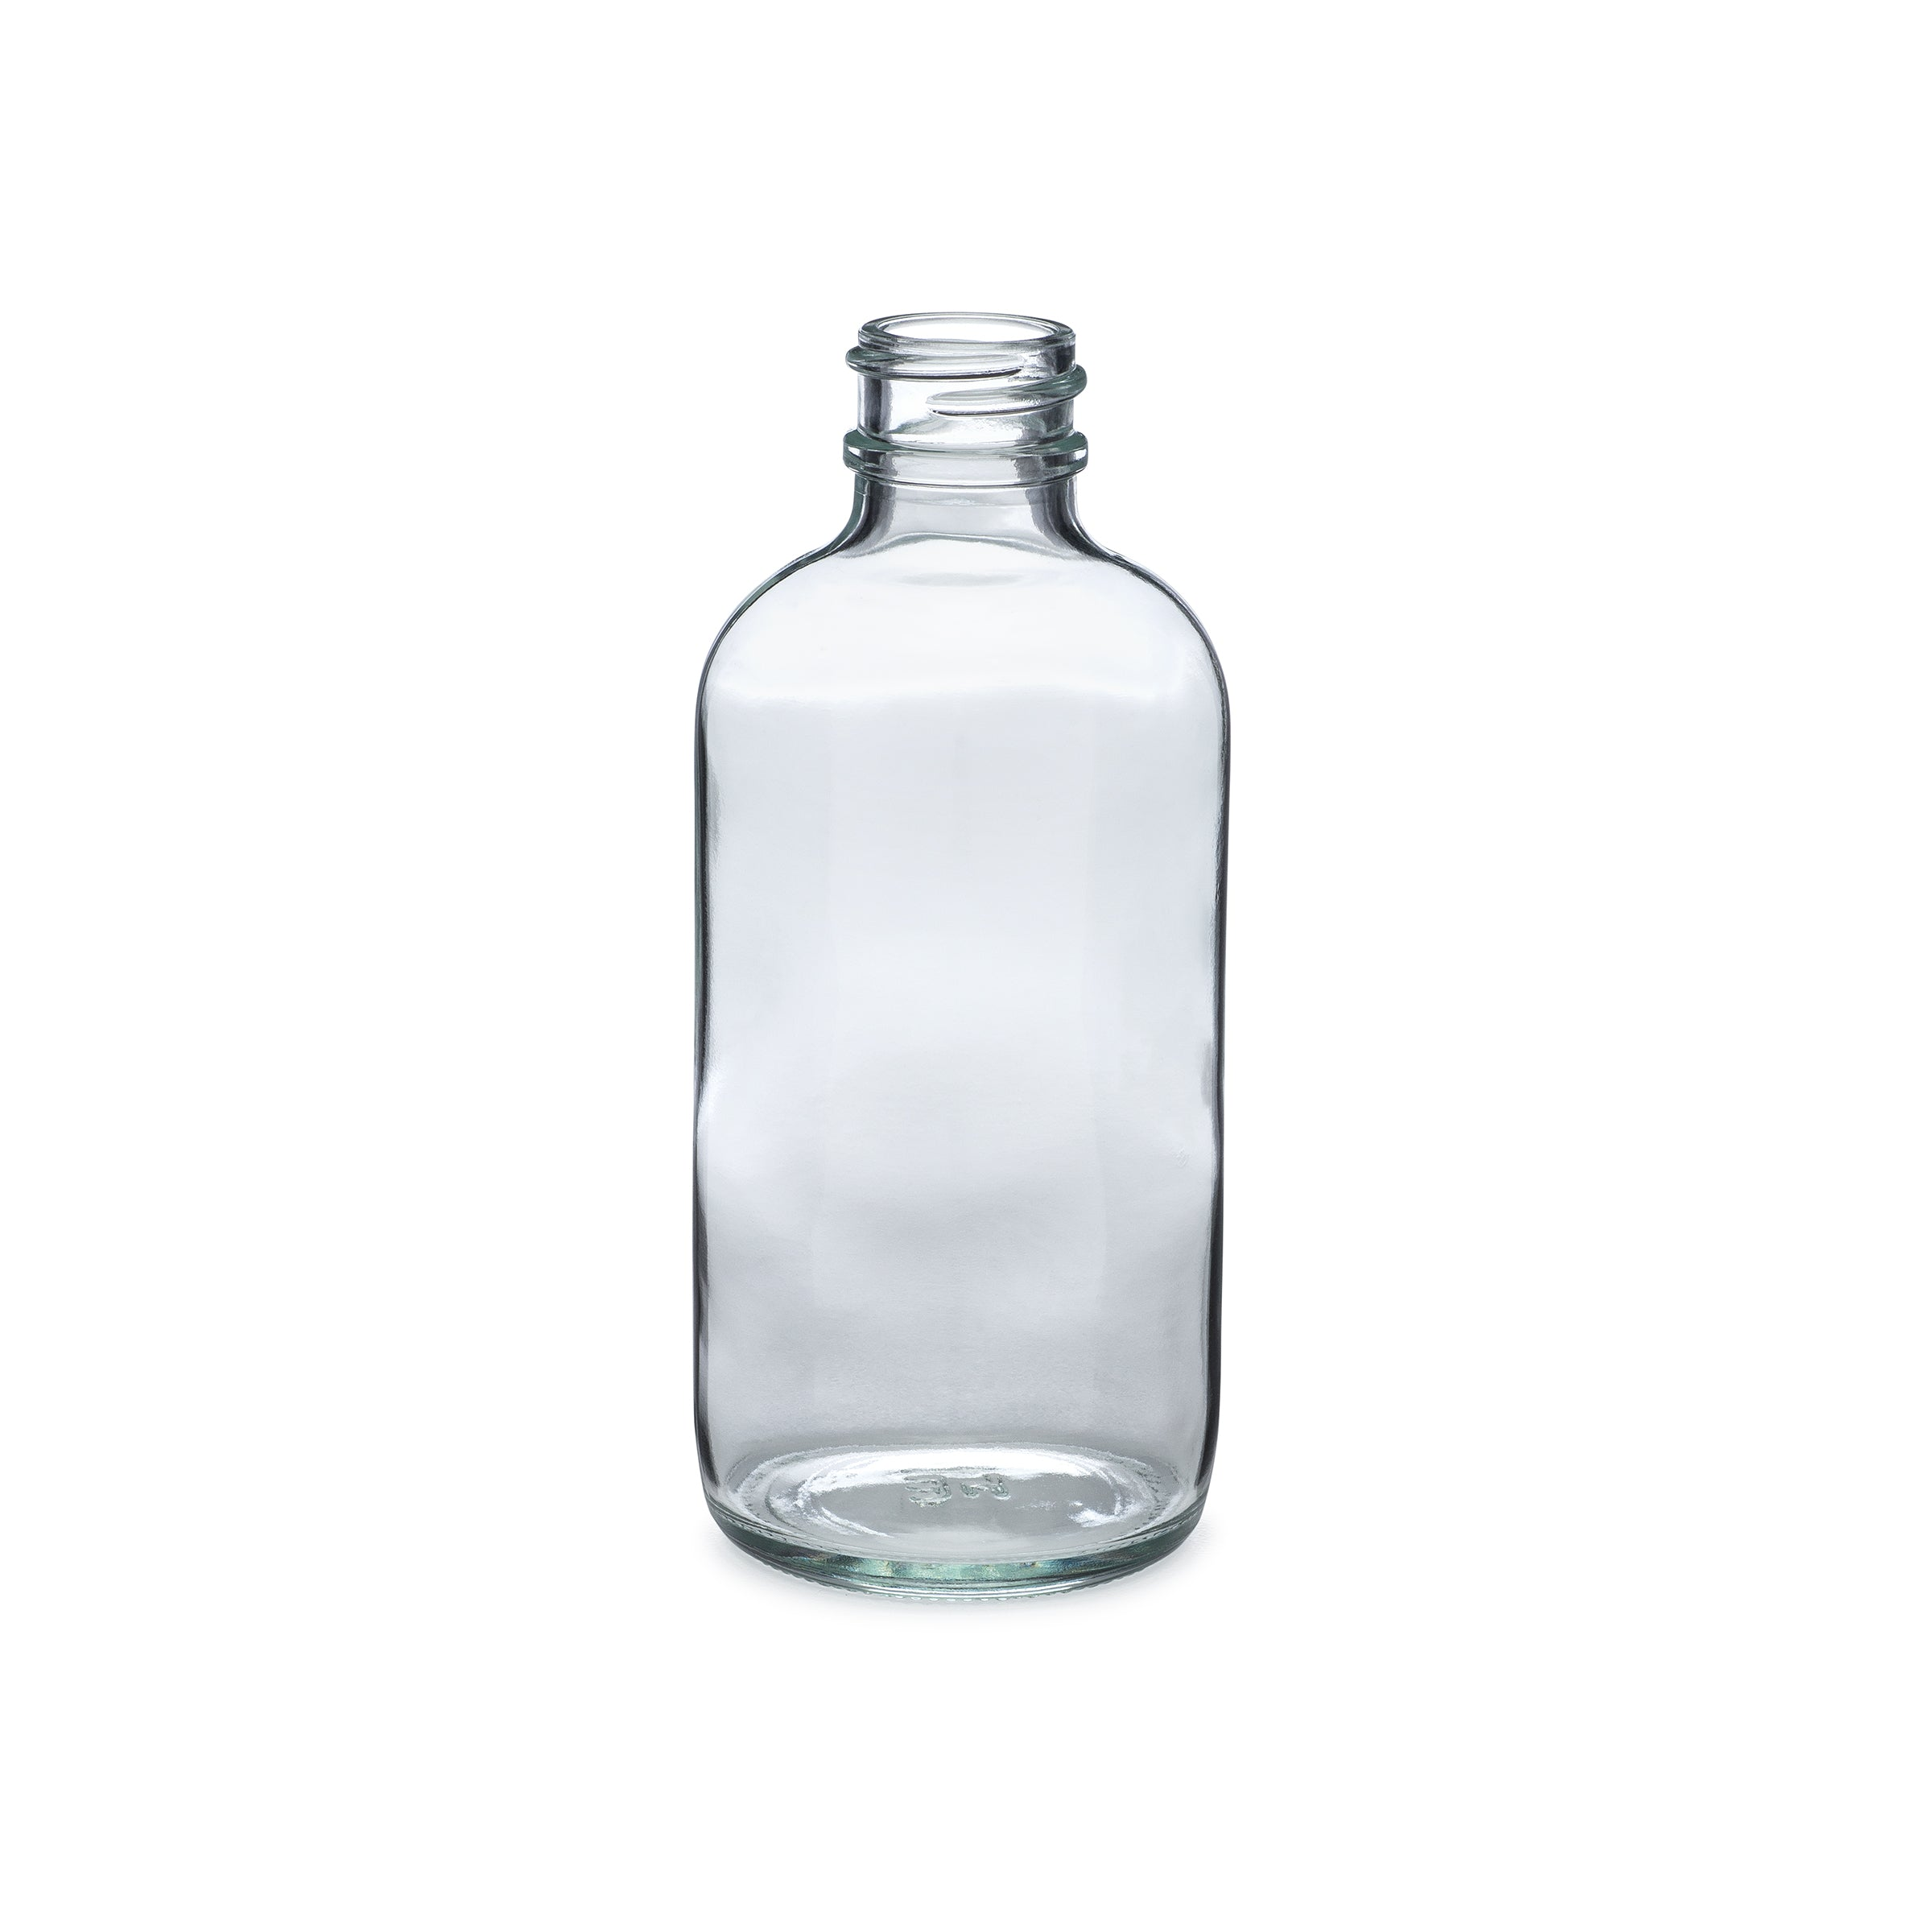 4oz/120ml Flint Boston Round Bottle